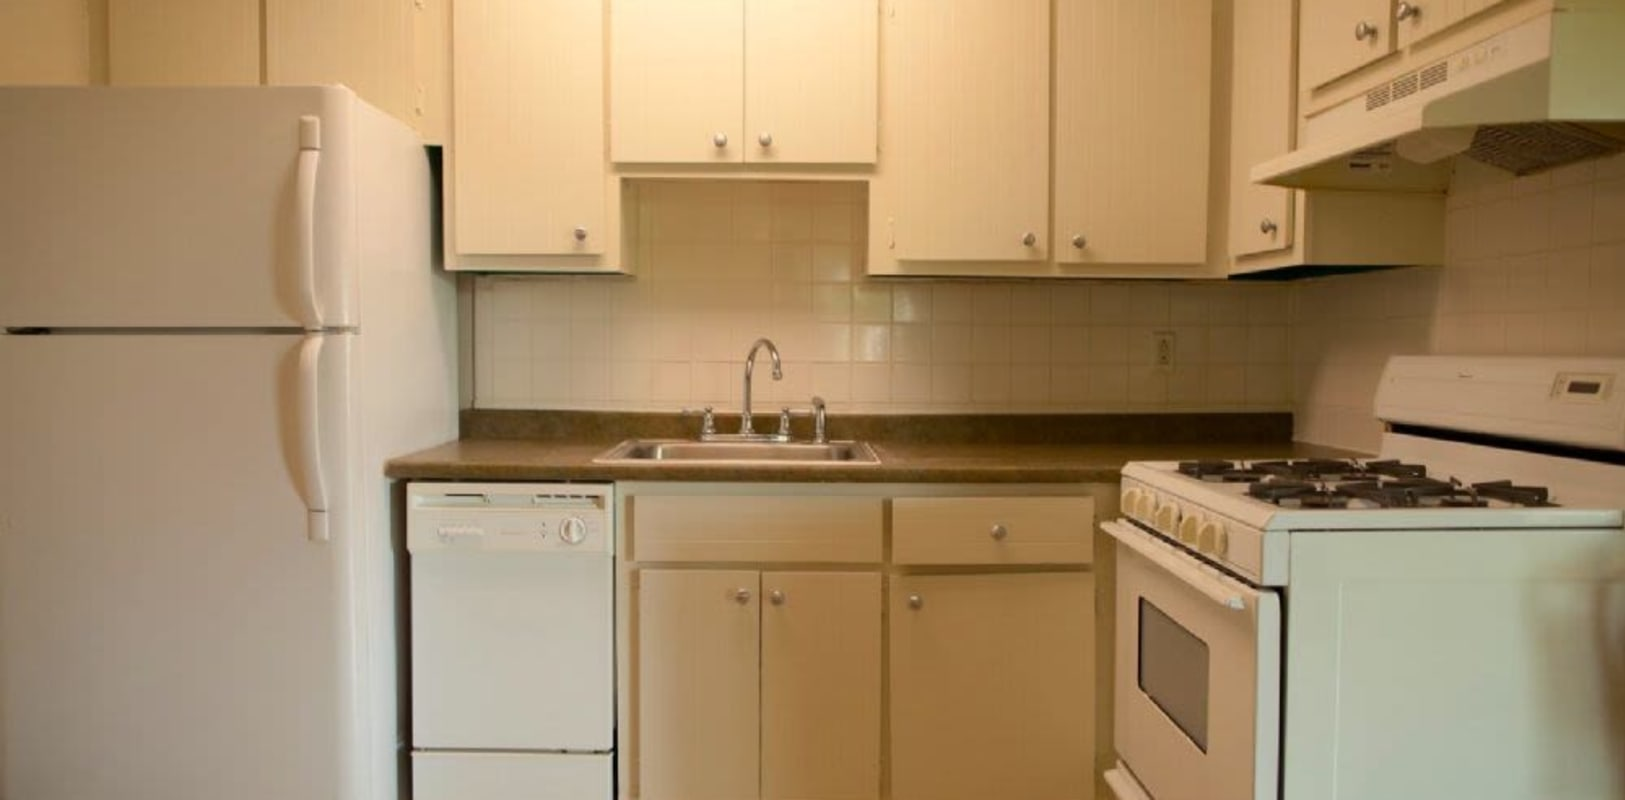 Kitchen with white appliances at Glen Wall Heights in Wall Township, New Jersey